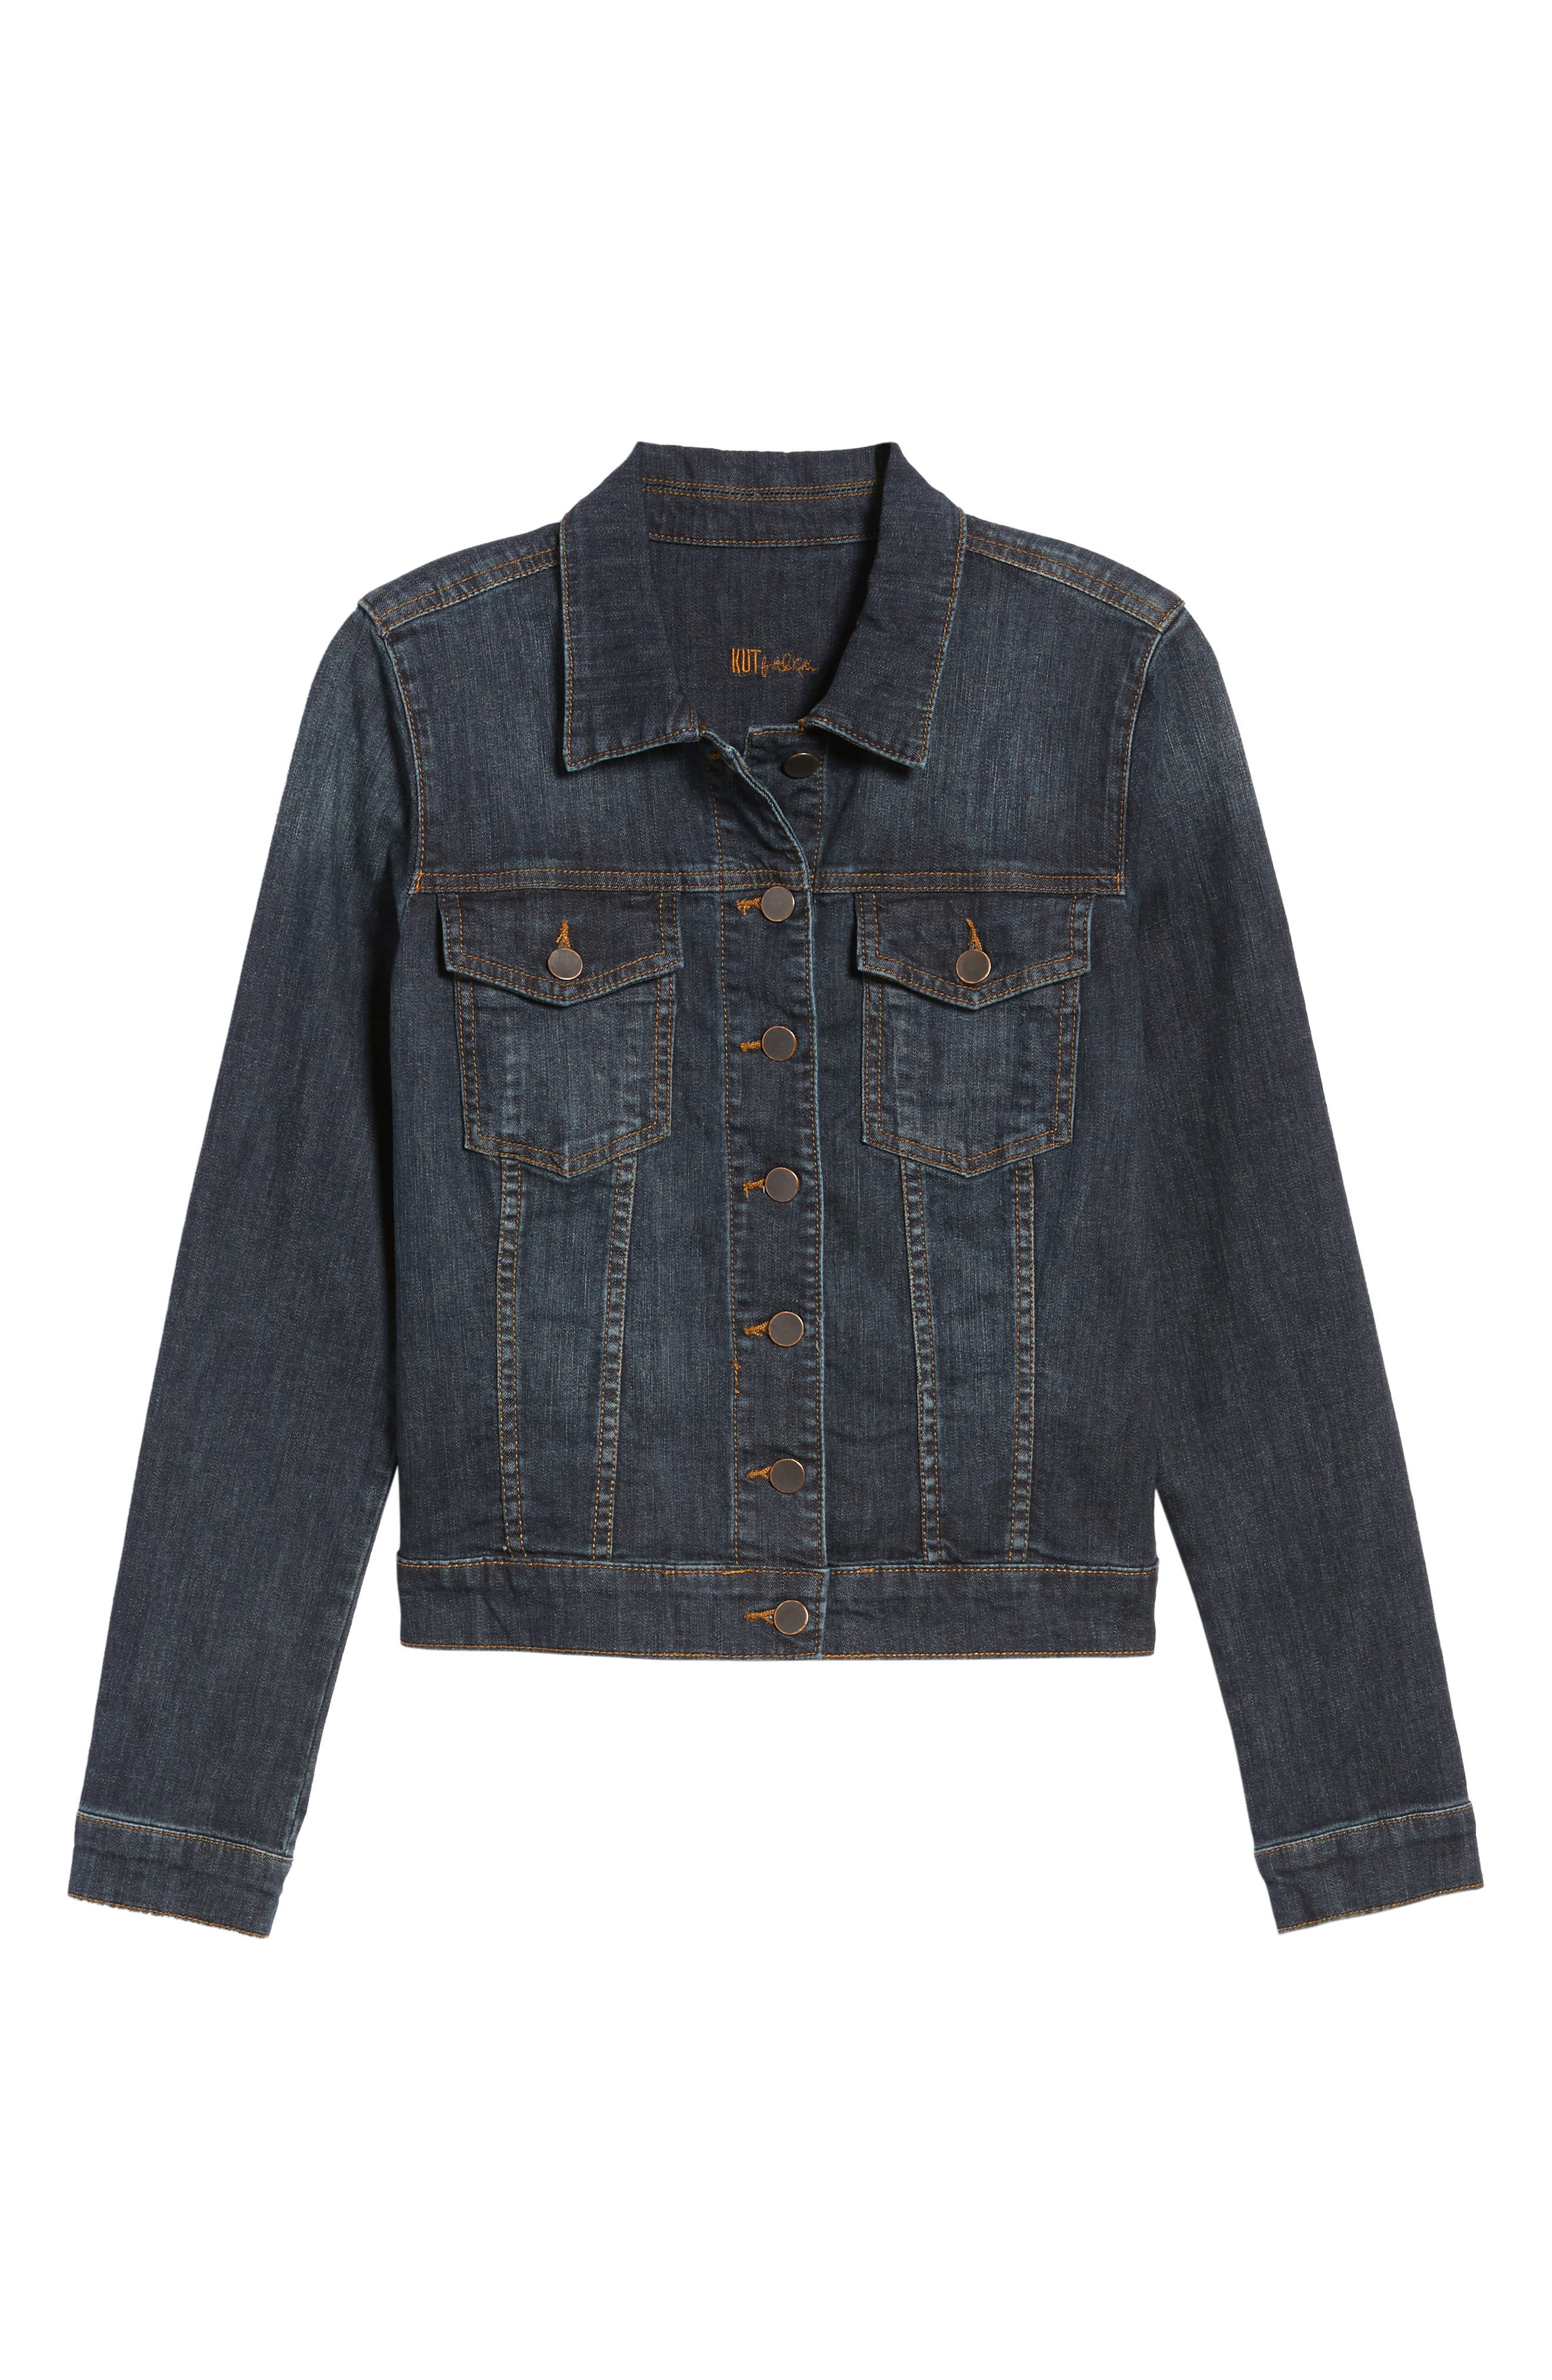 'Helena' Denim Jacket,                             Alternate thumbnail 24, color,